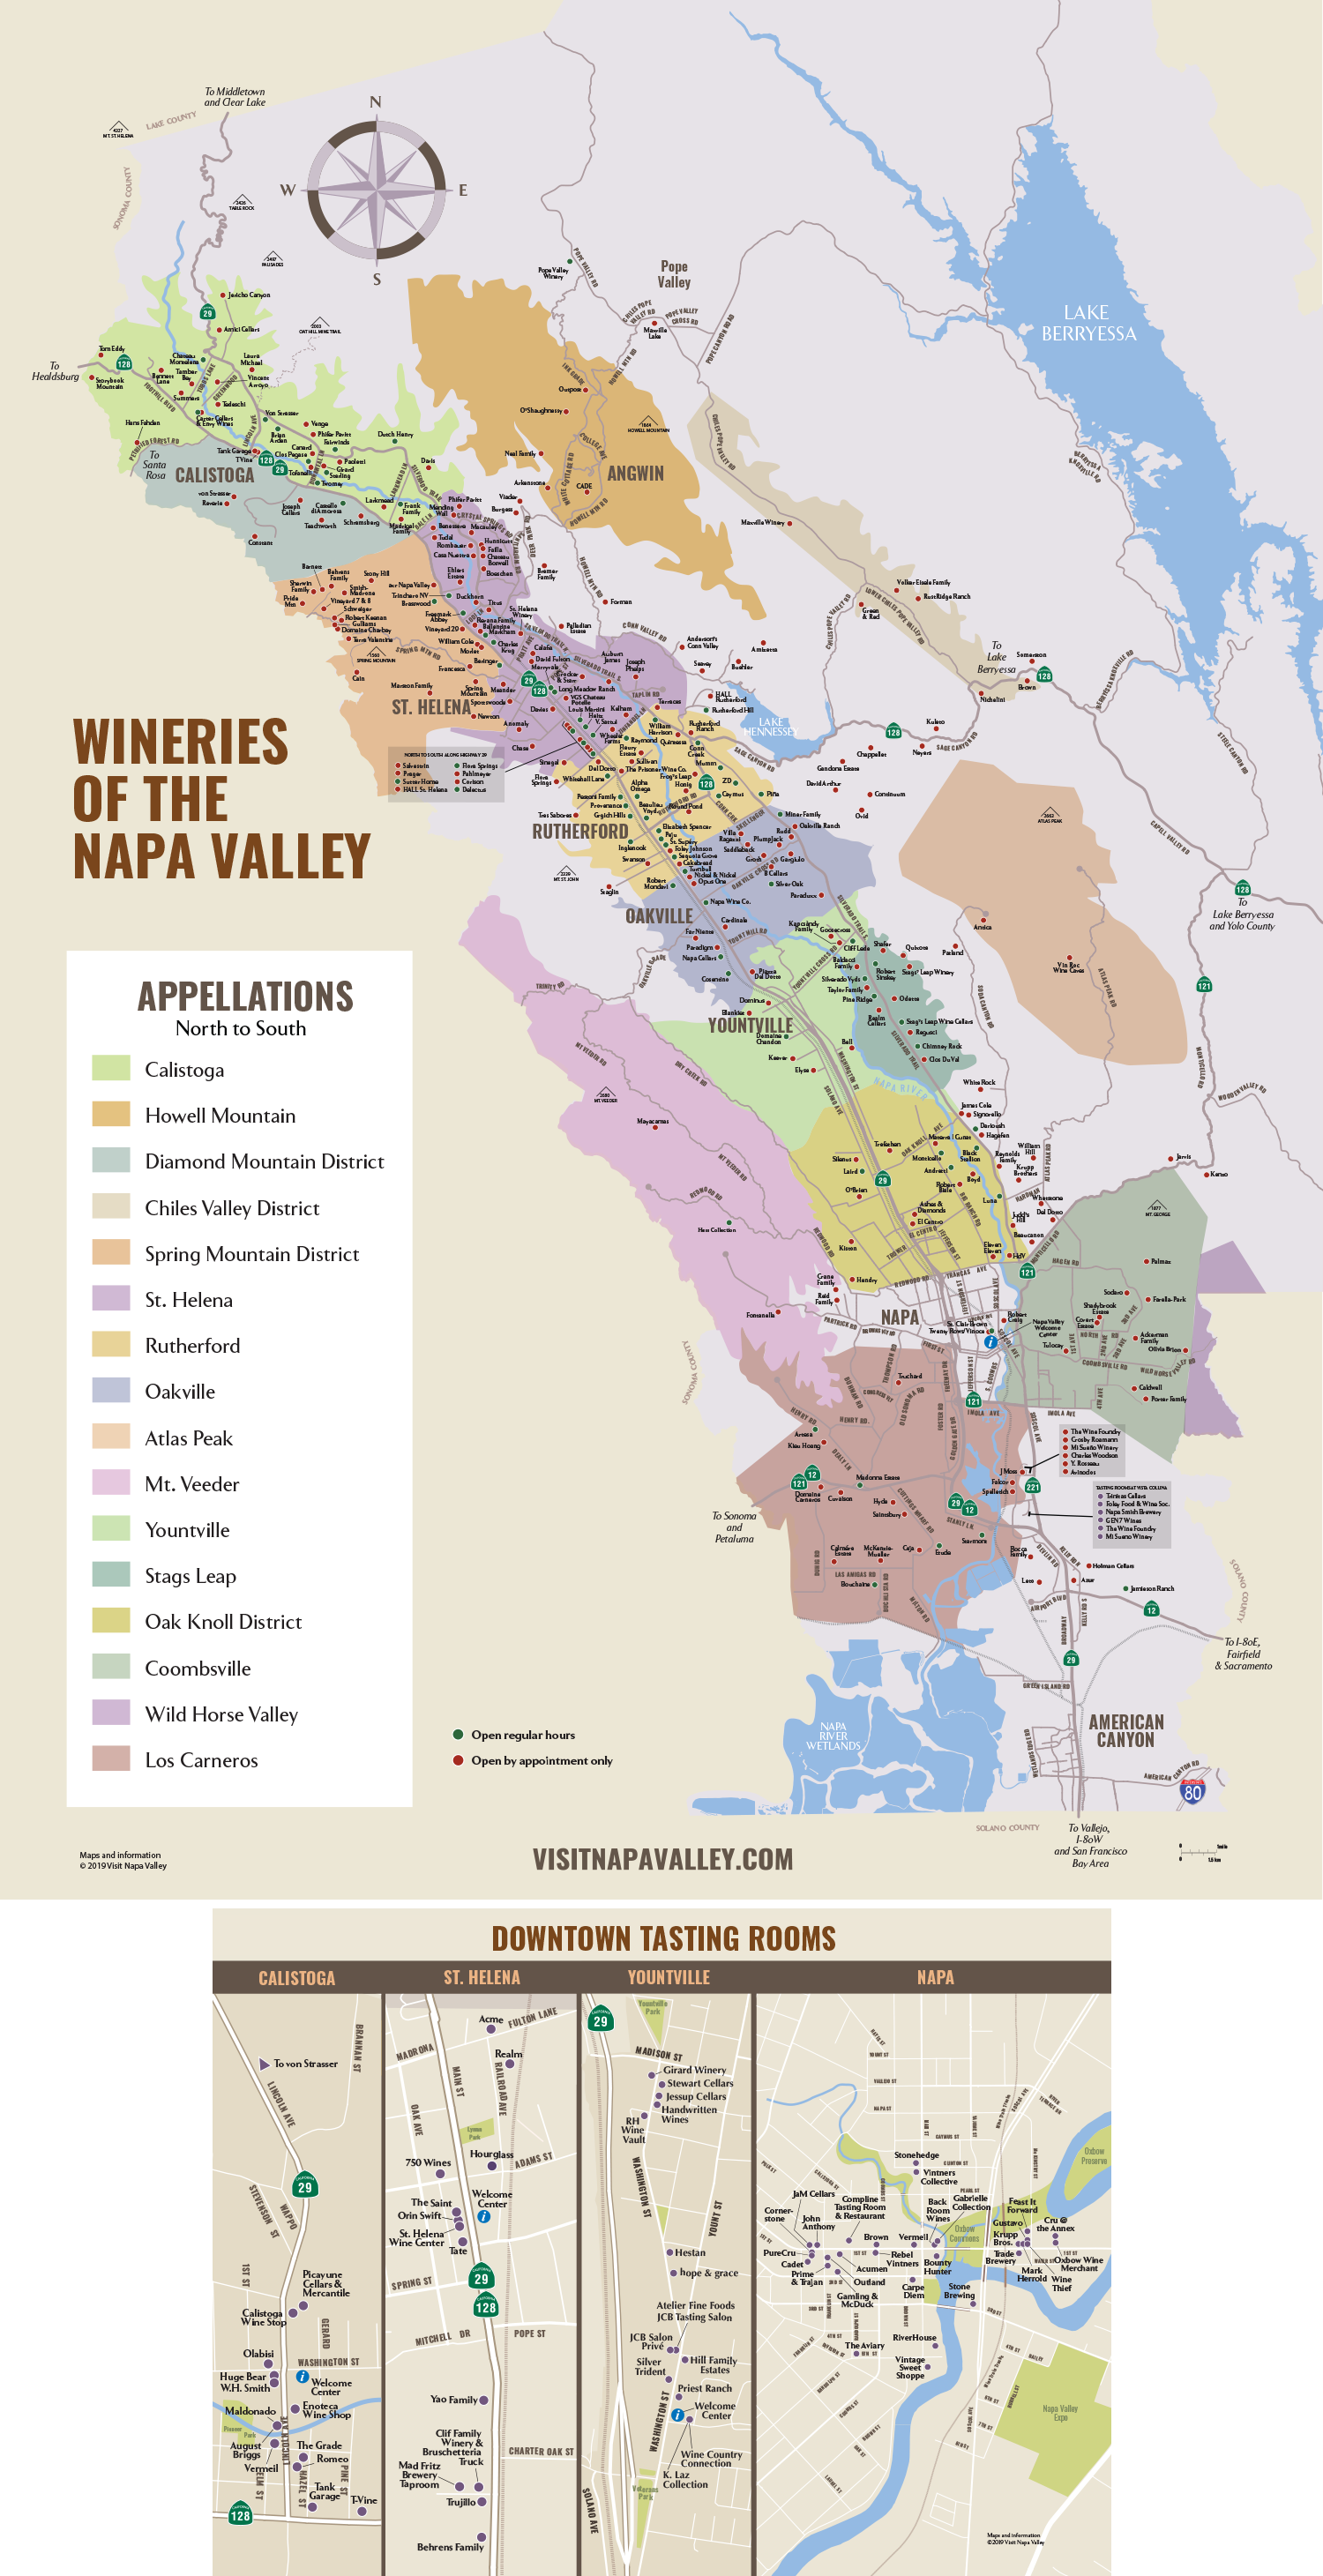 Sonoma Valley California Map.Napa Valley Winery Map Plan Your Visit To Our Wineries